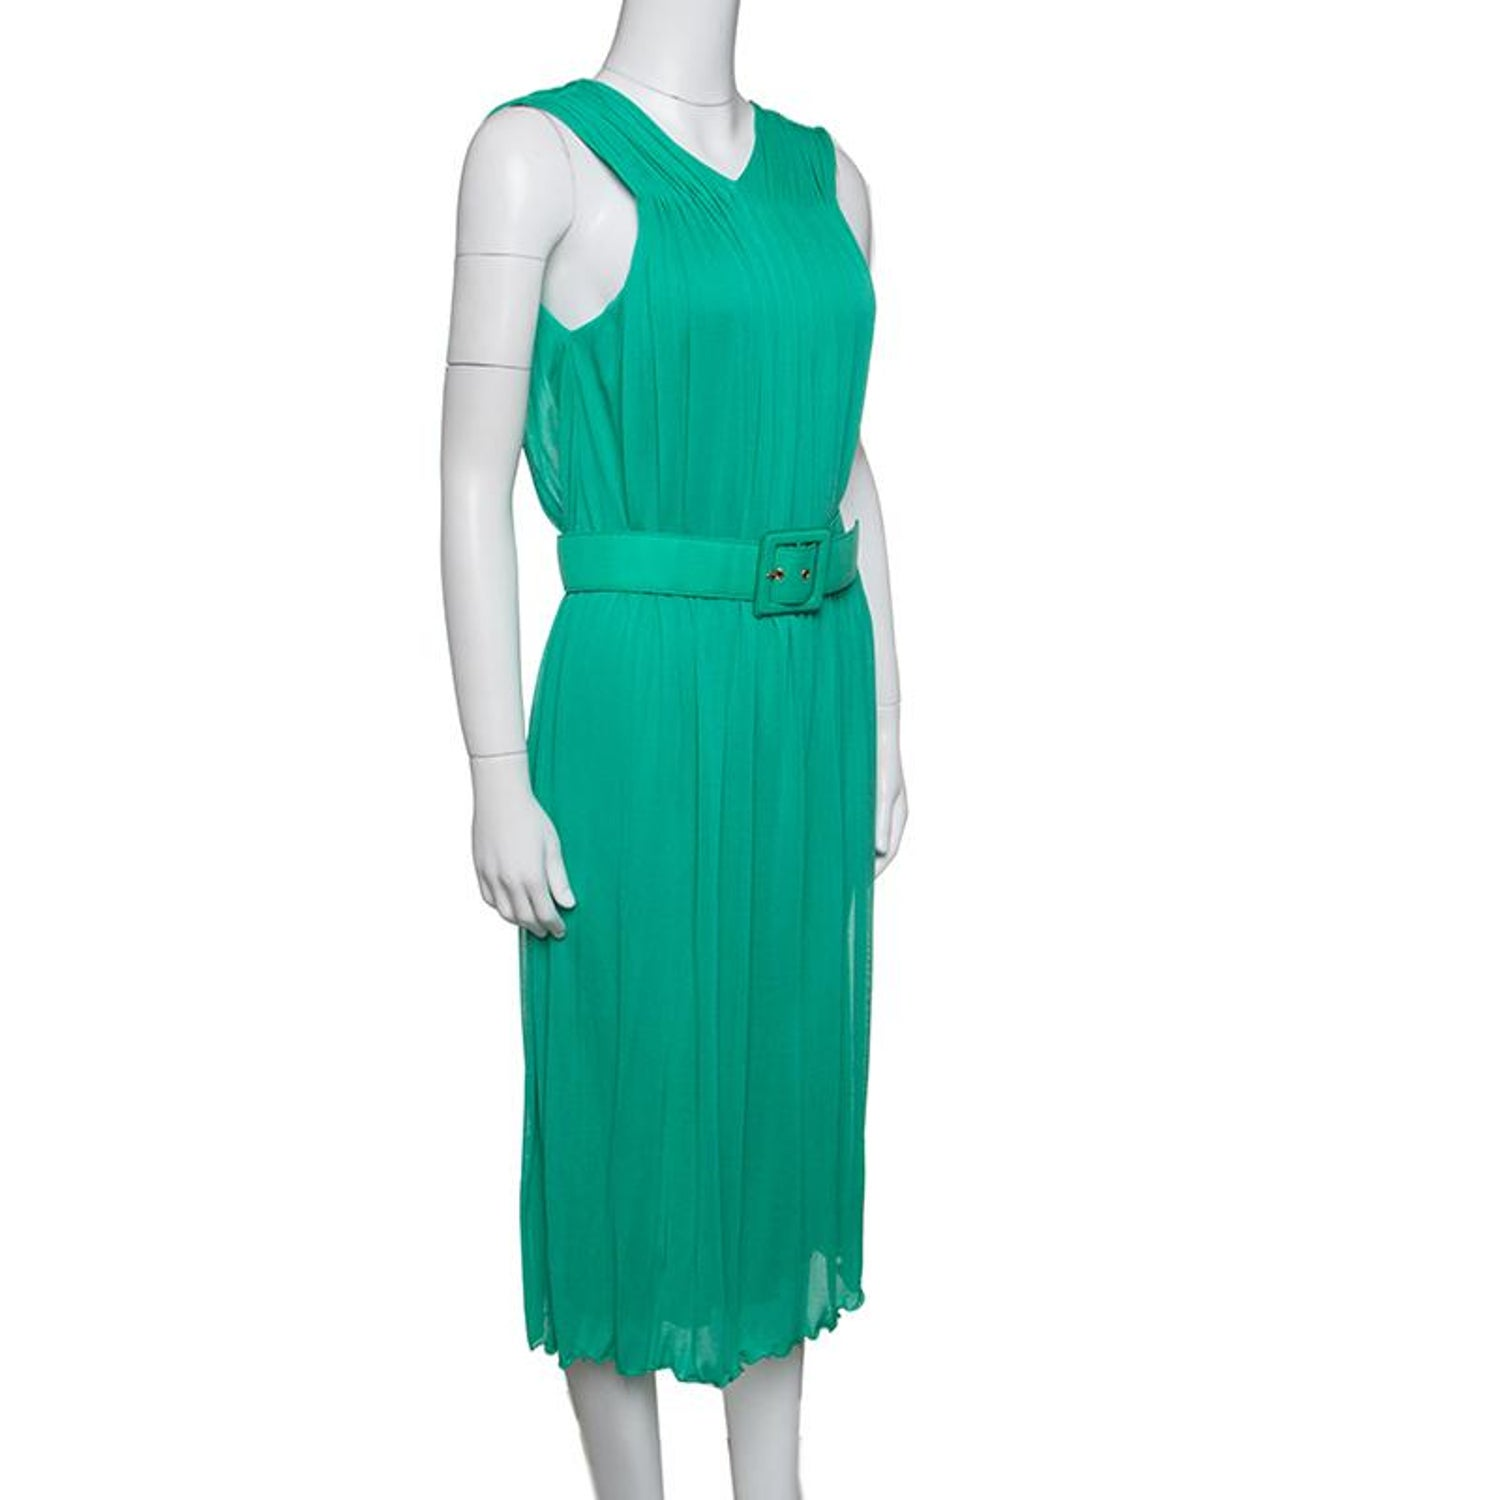 4ca61825ab752 Gucci Mint Green Pleated Sleeveless Belted Dress M For Sale at 1stdibs